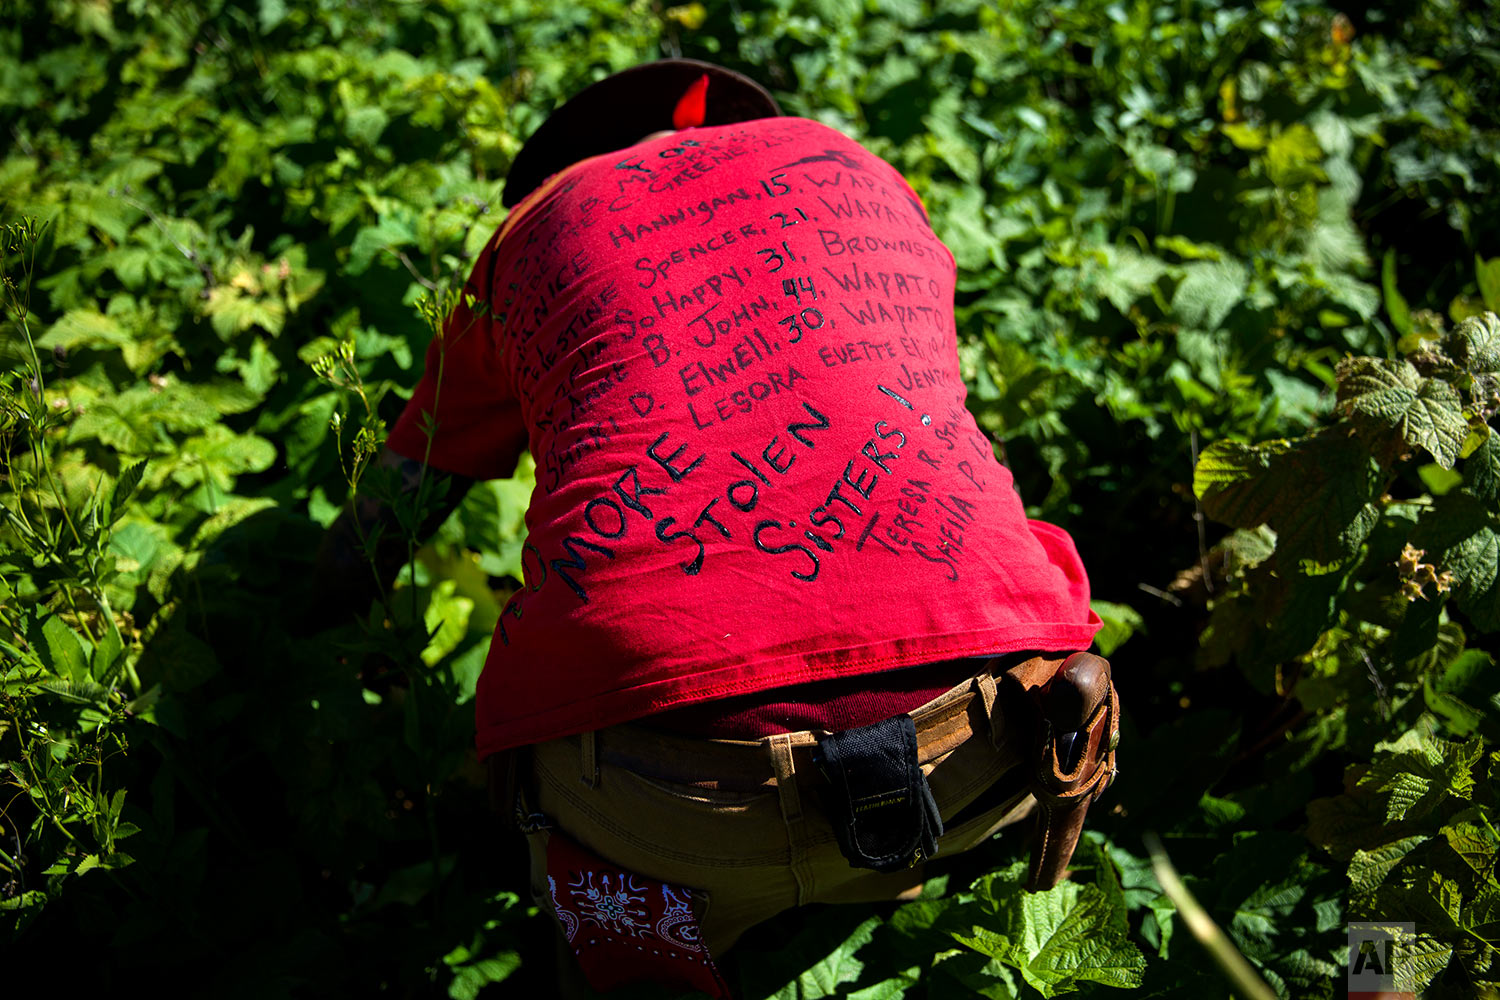 Randy Ortiz wears a shirt with the names of missing and murdered indigenous women as he searches for Ashley HeavyRunner Loring in the mountains of the Blackfeet Indian Reservation in Babb, Mont., July 12, 2018.(AP Photo/David Goldman)